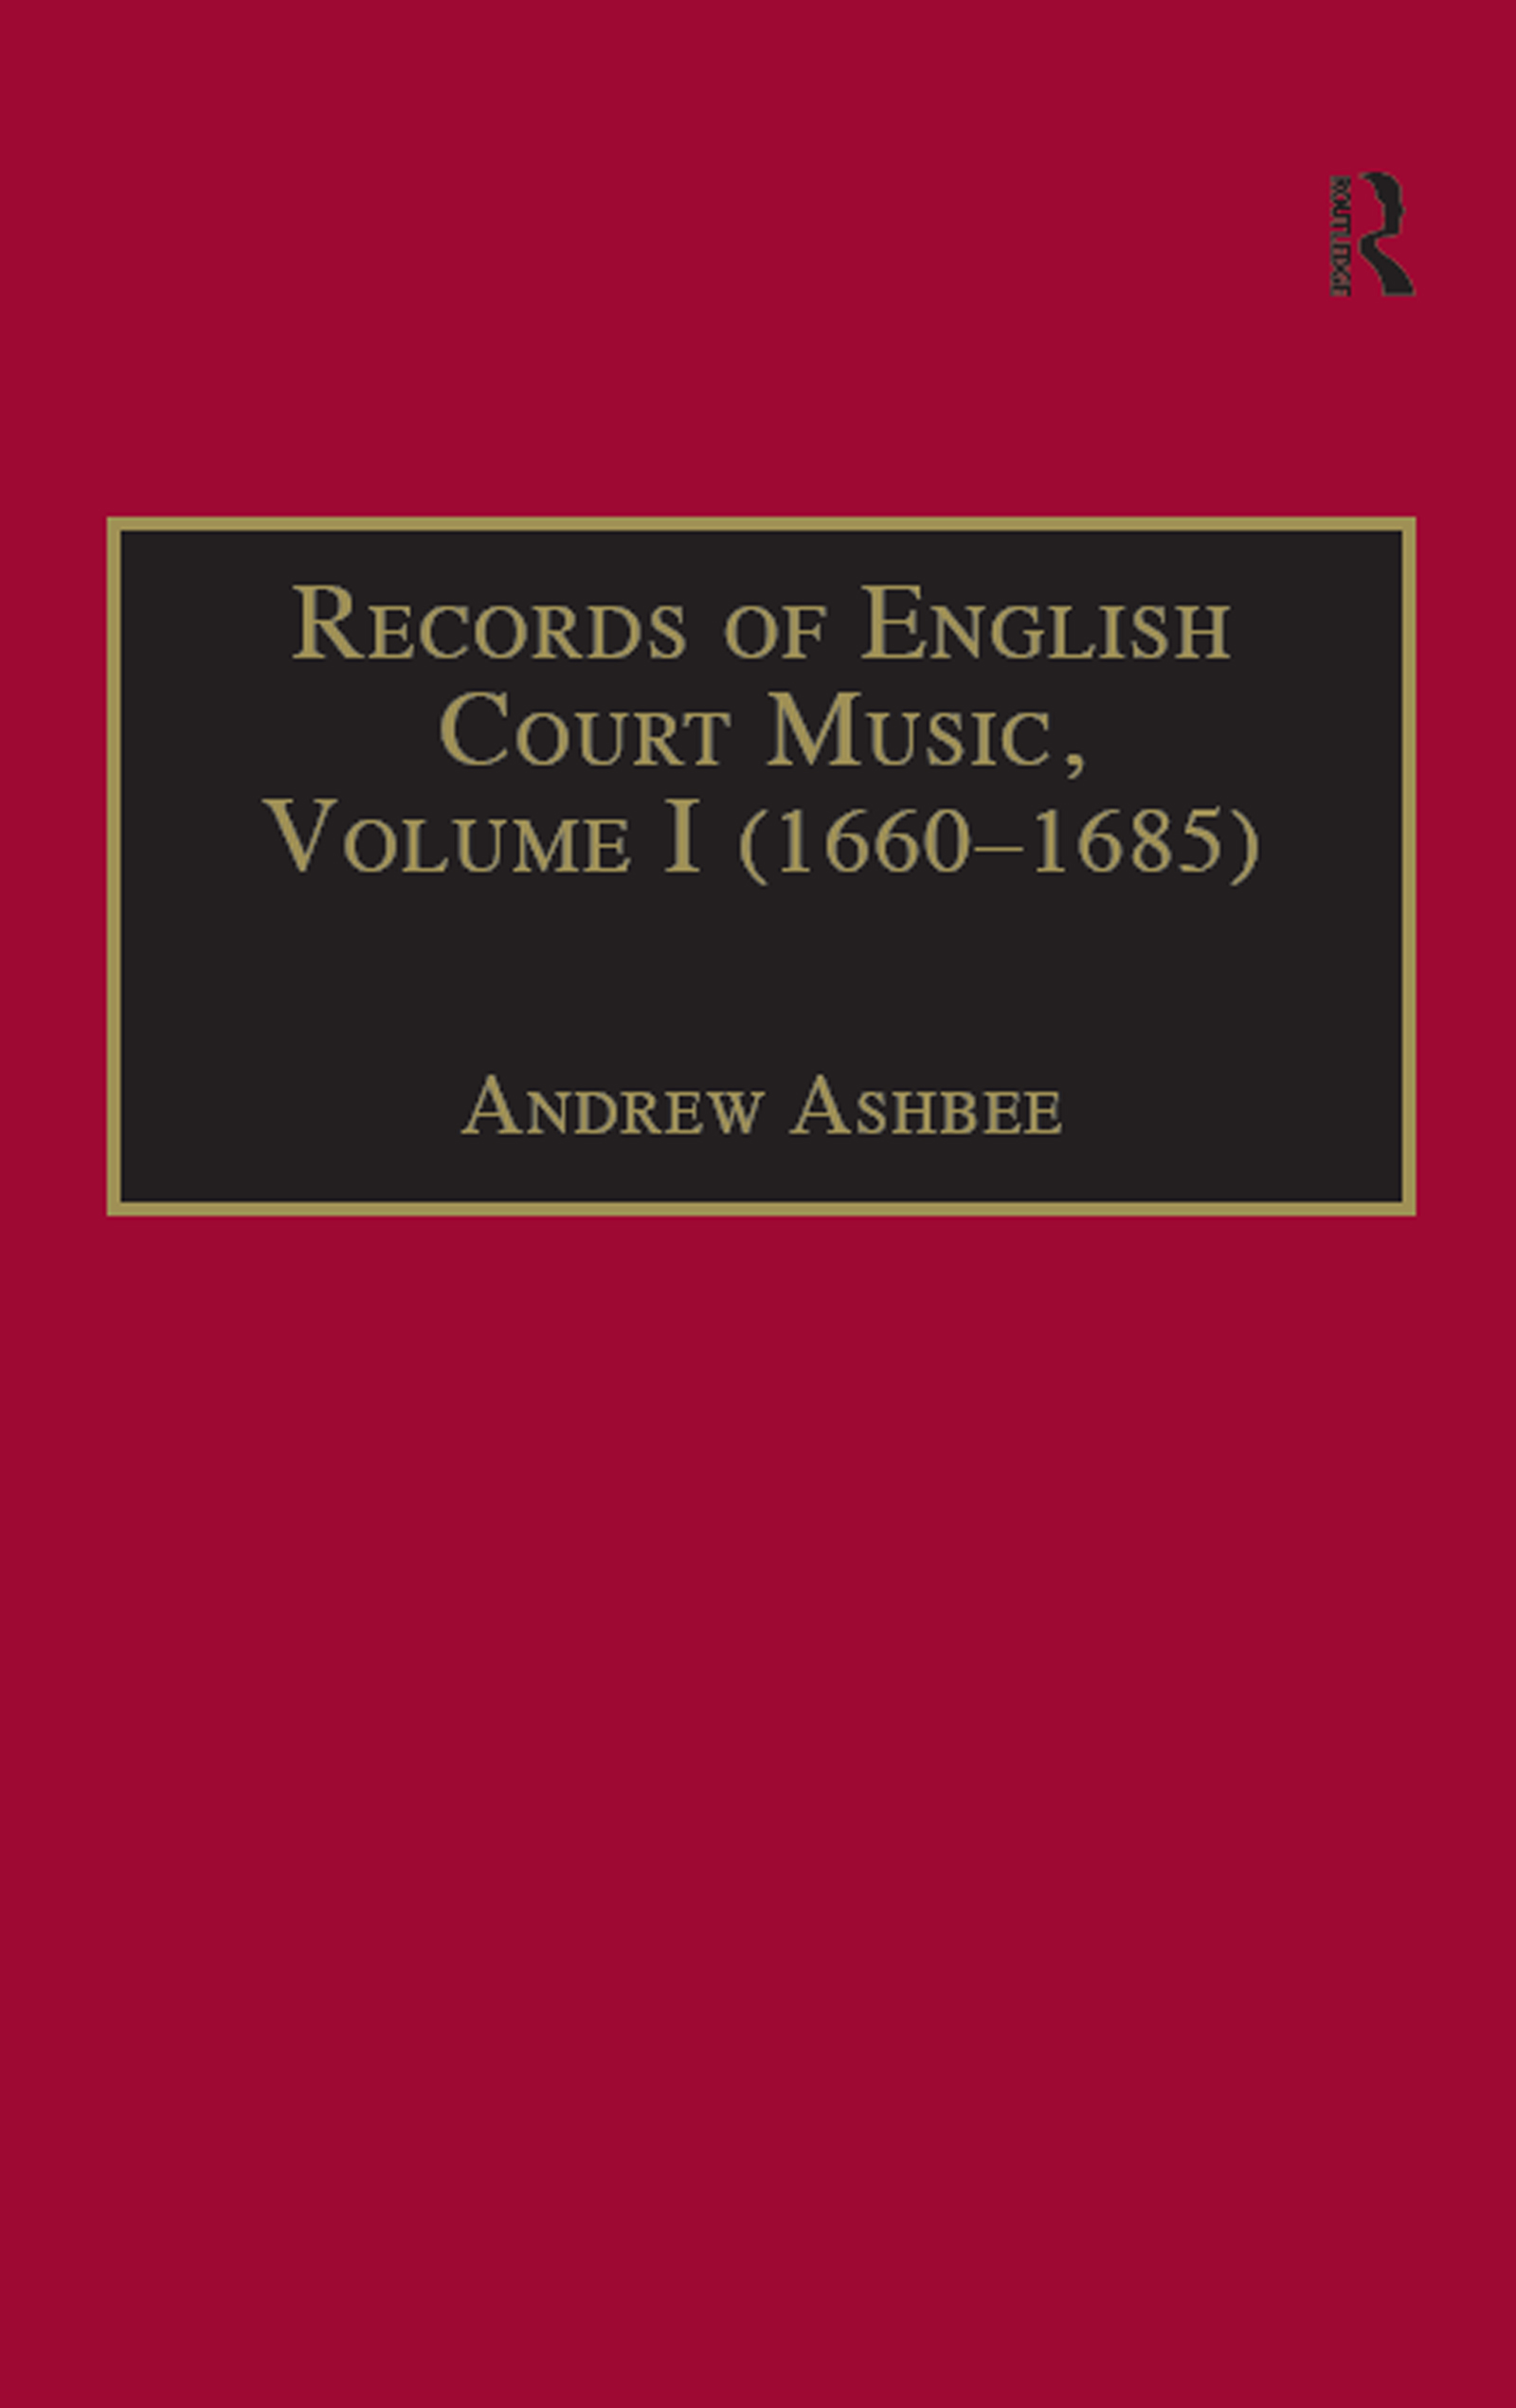 Records of English Court Music